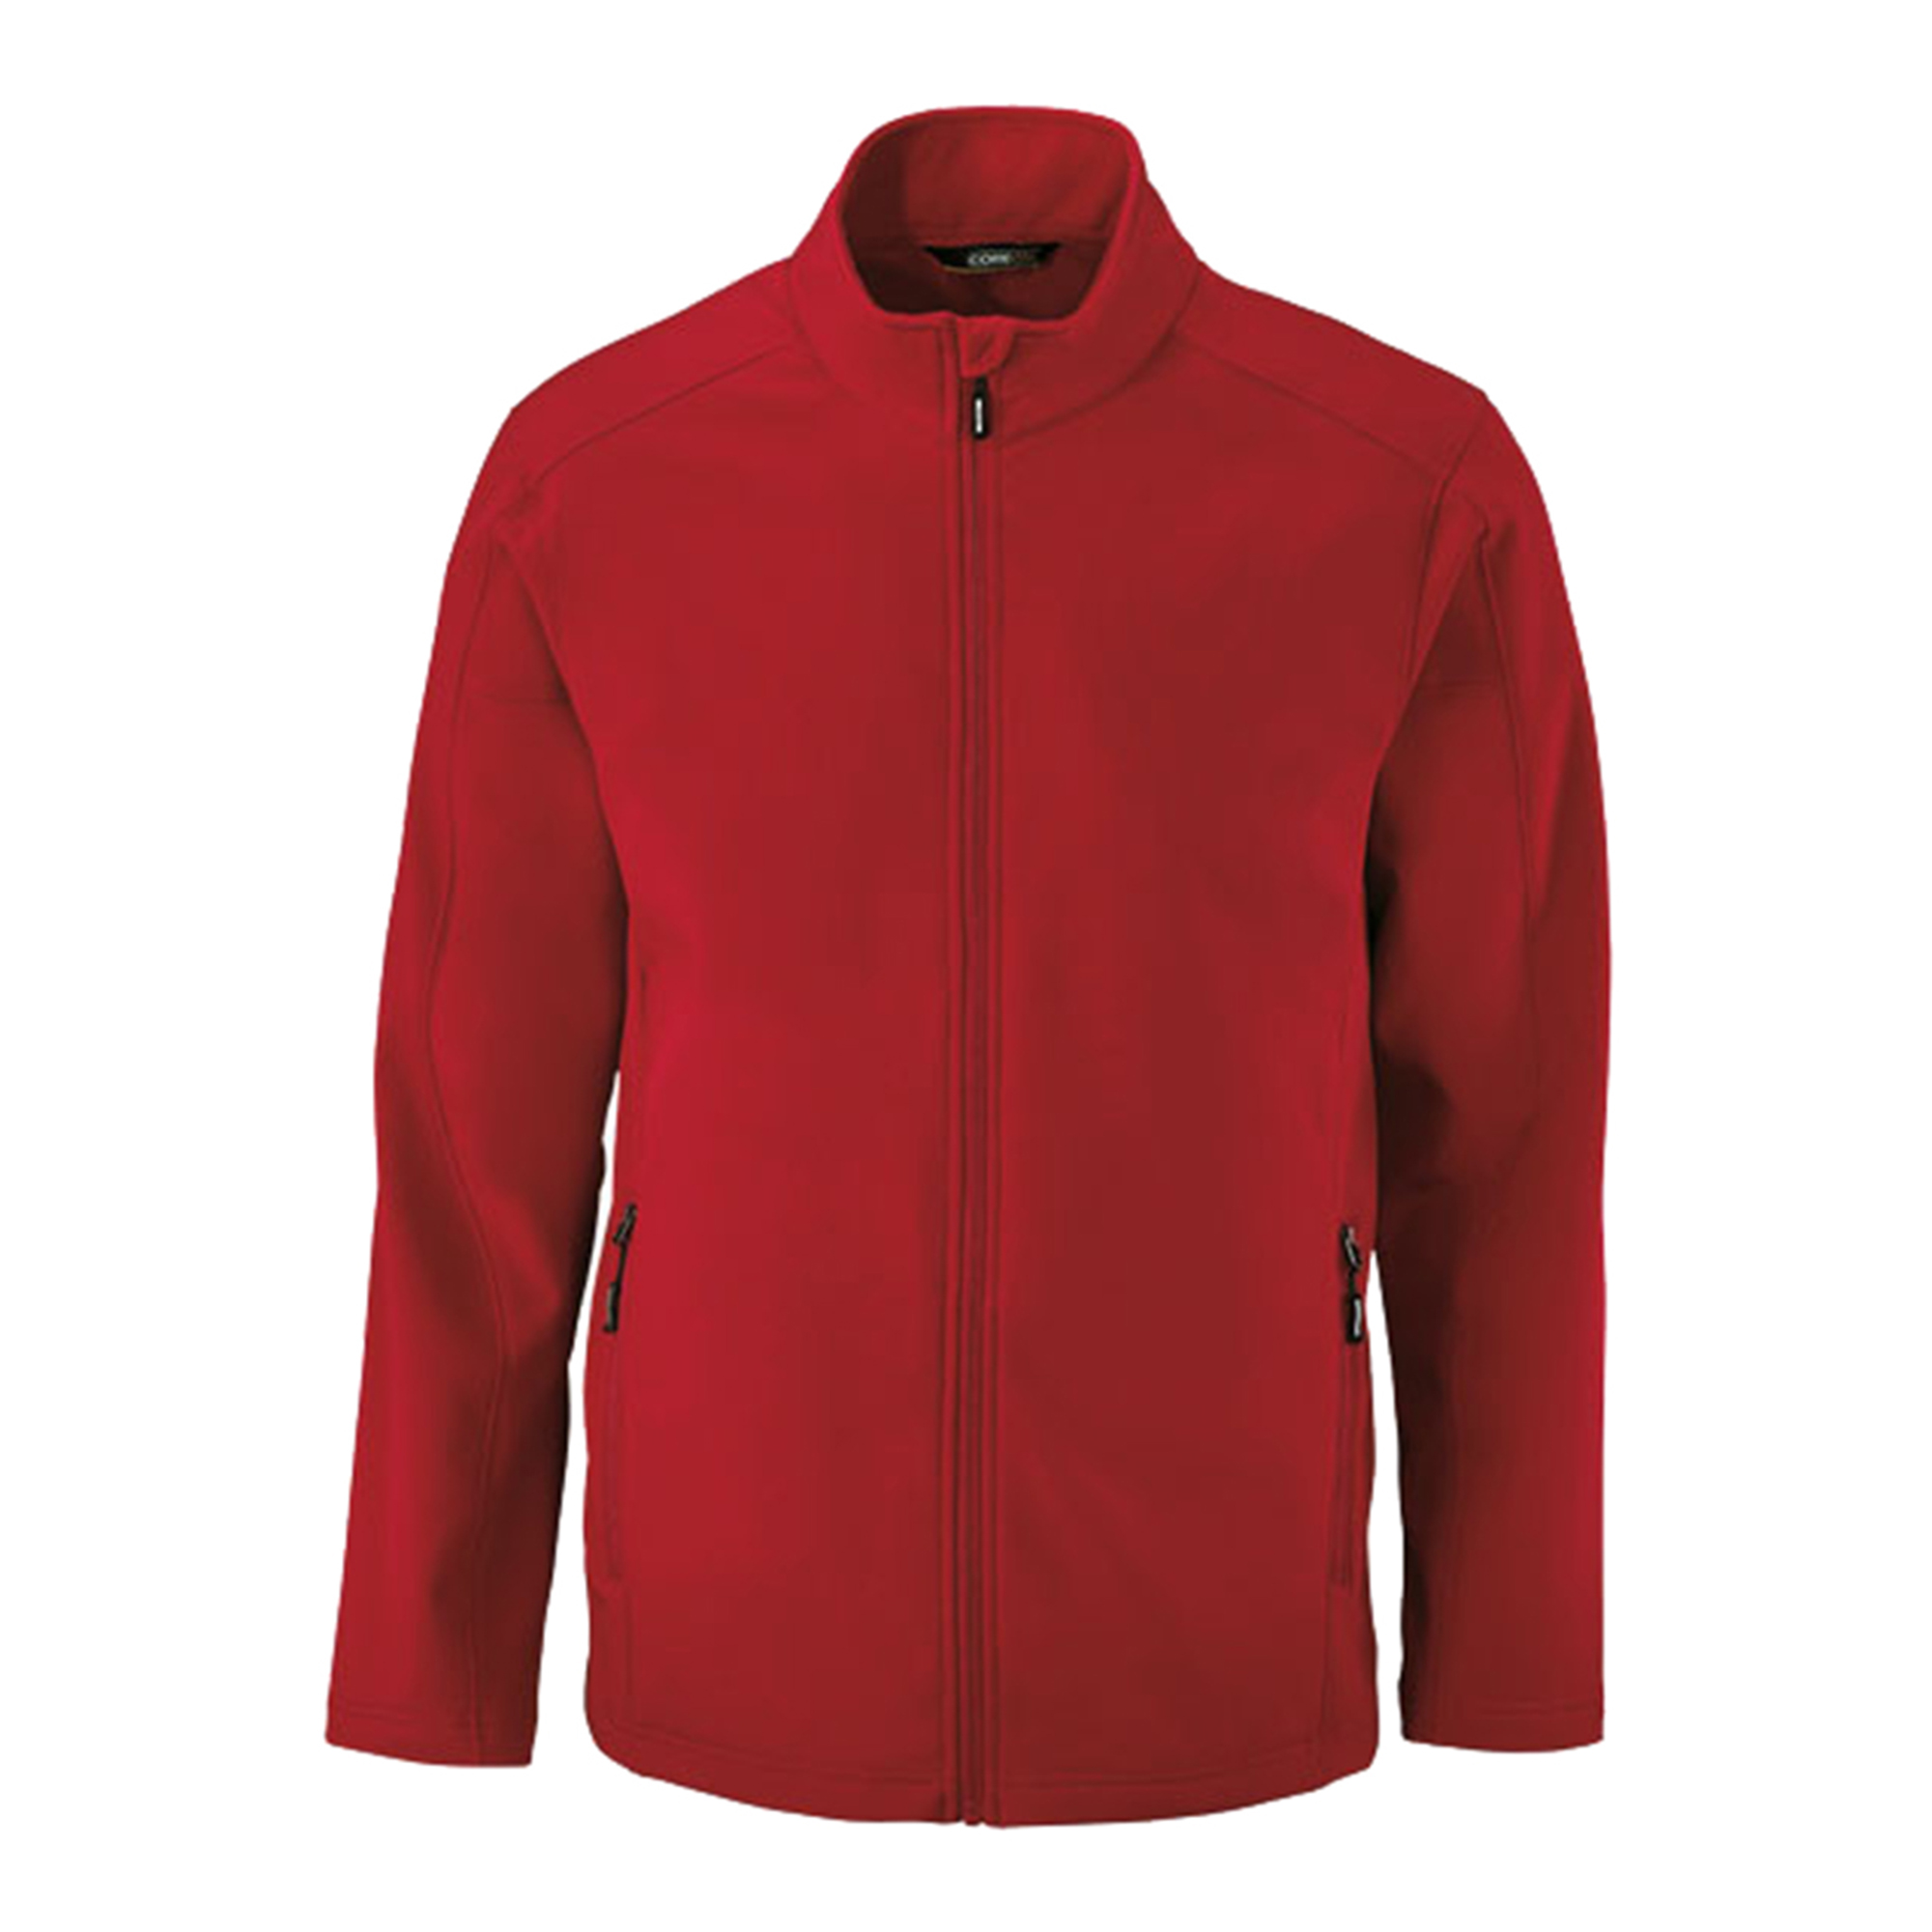 North End 88184 Men's Soft Shell Inside Left Pocket Jacket at Sears.com